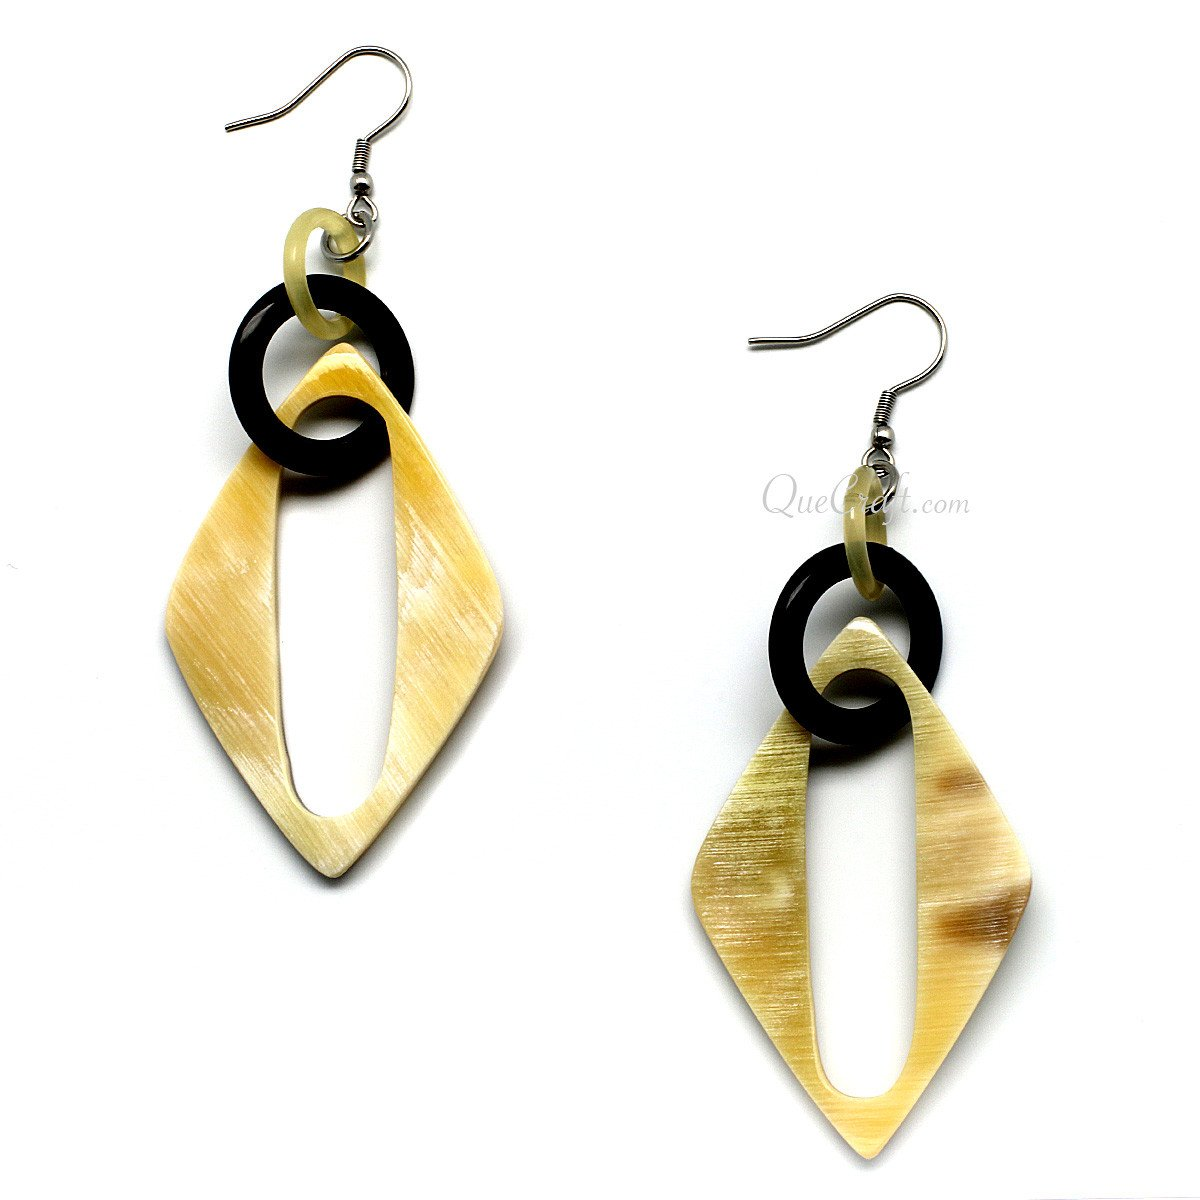 Horn Earrings #10008 - HORN.JEWELRY